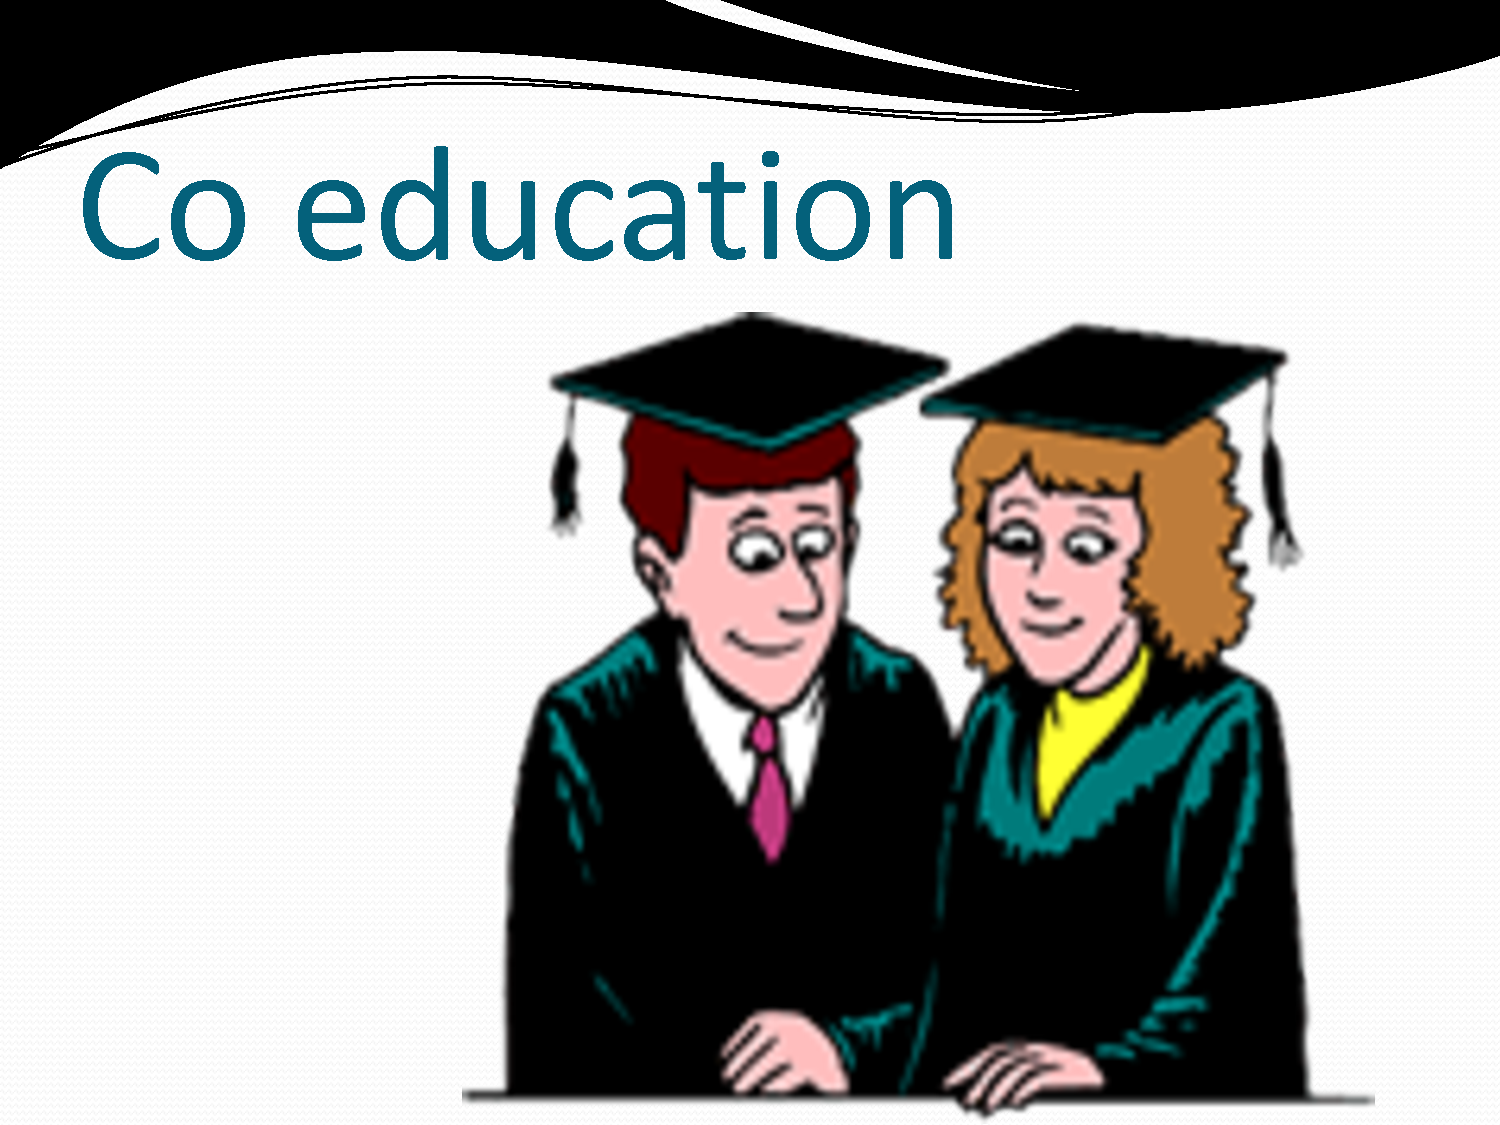 what is the meaning of co education